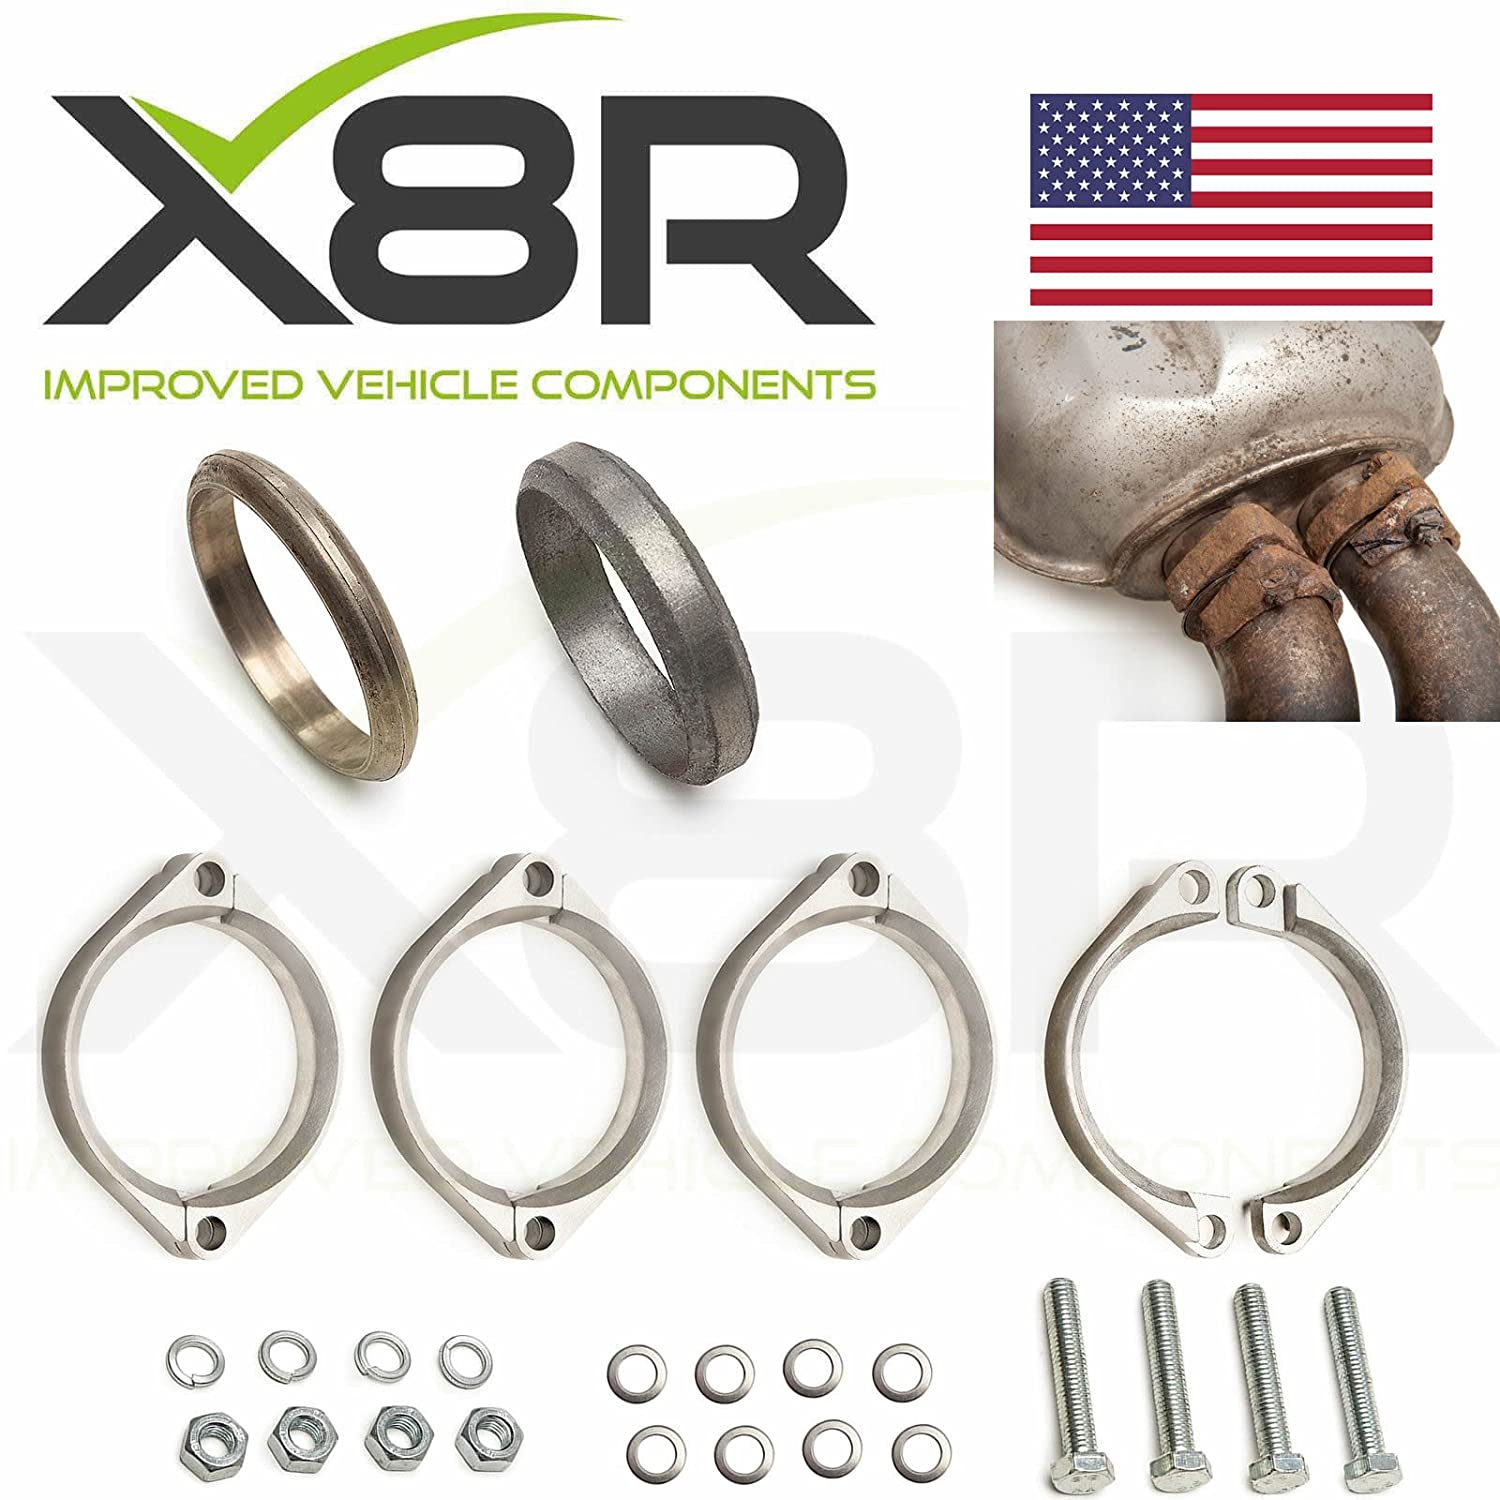 Amazon.com: BMW E46 M3 Exhaust Flange Muffler Back Box Repair Rusted Corroded Flanges Kit X8R0092: Automotive